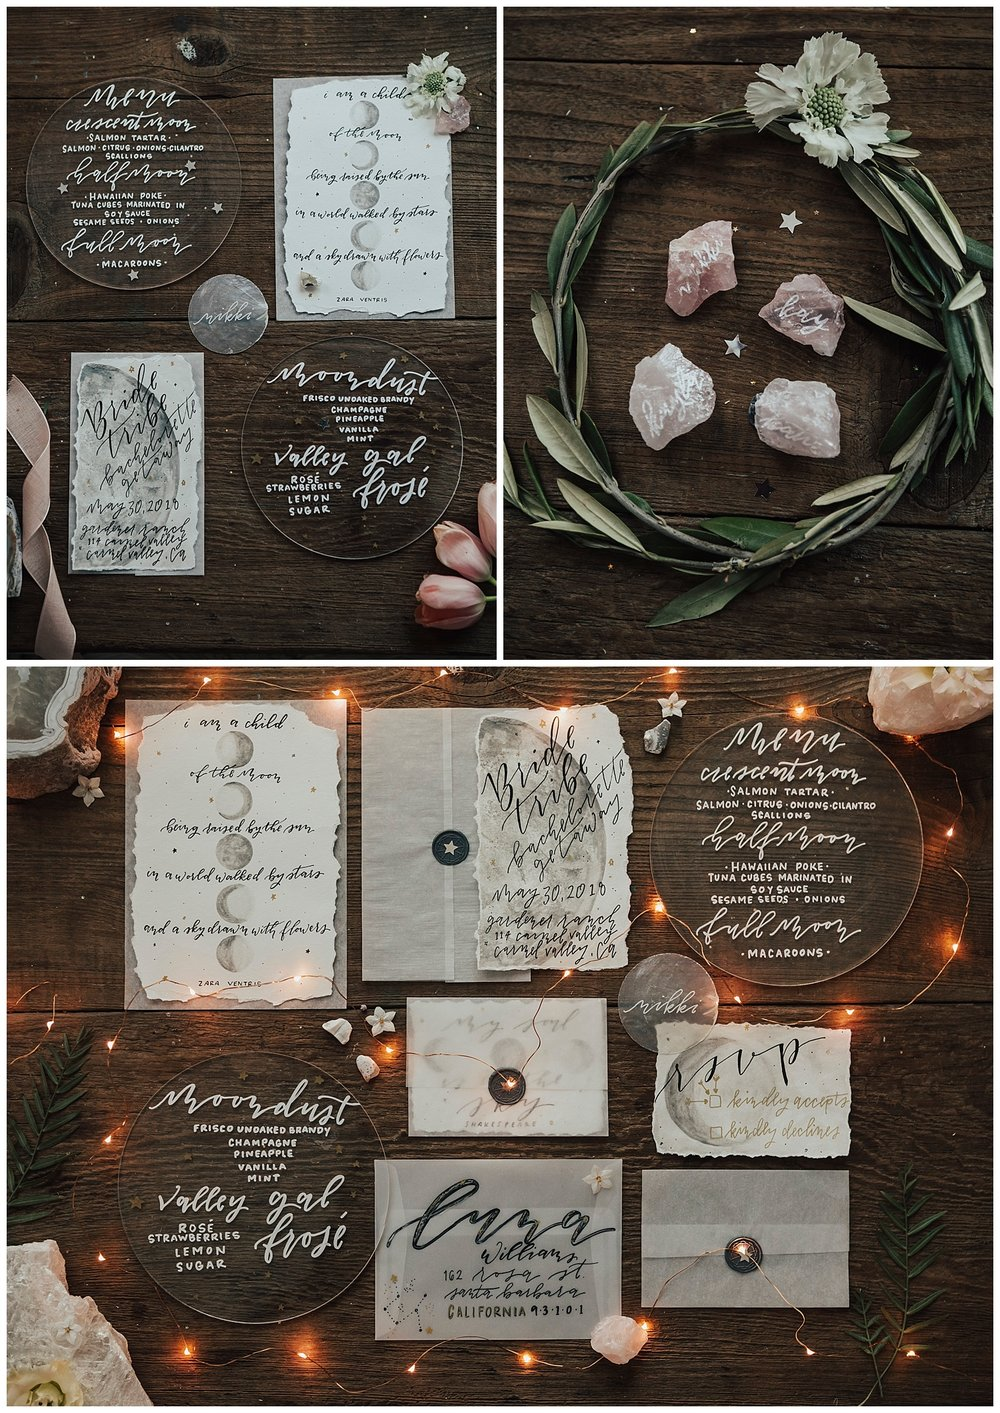 boho-wedding-invitatios-caligraphy.jpg